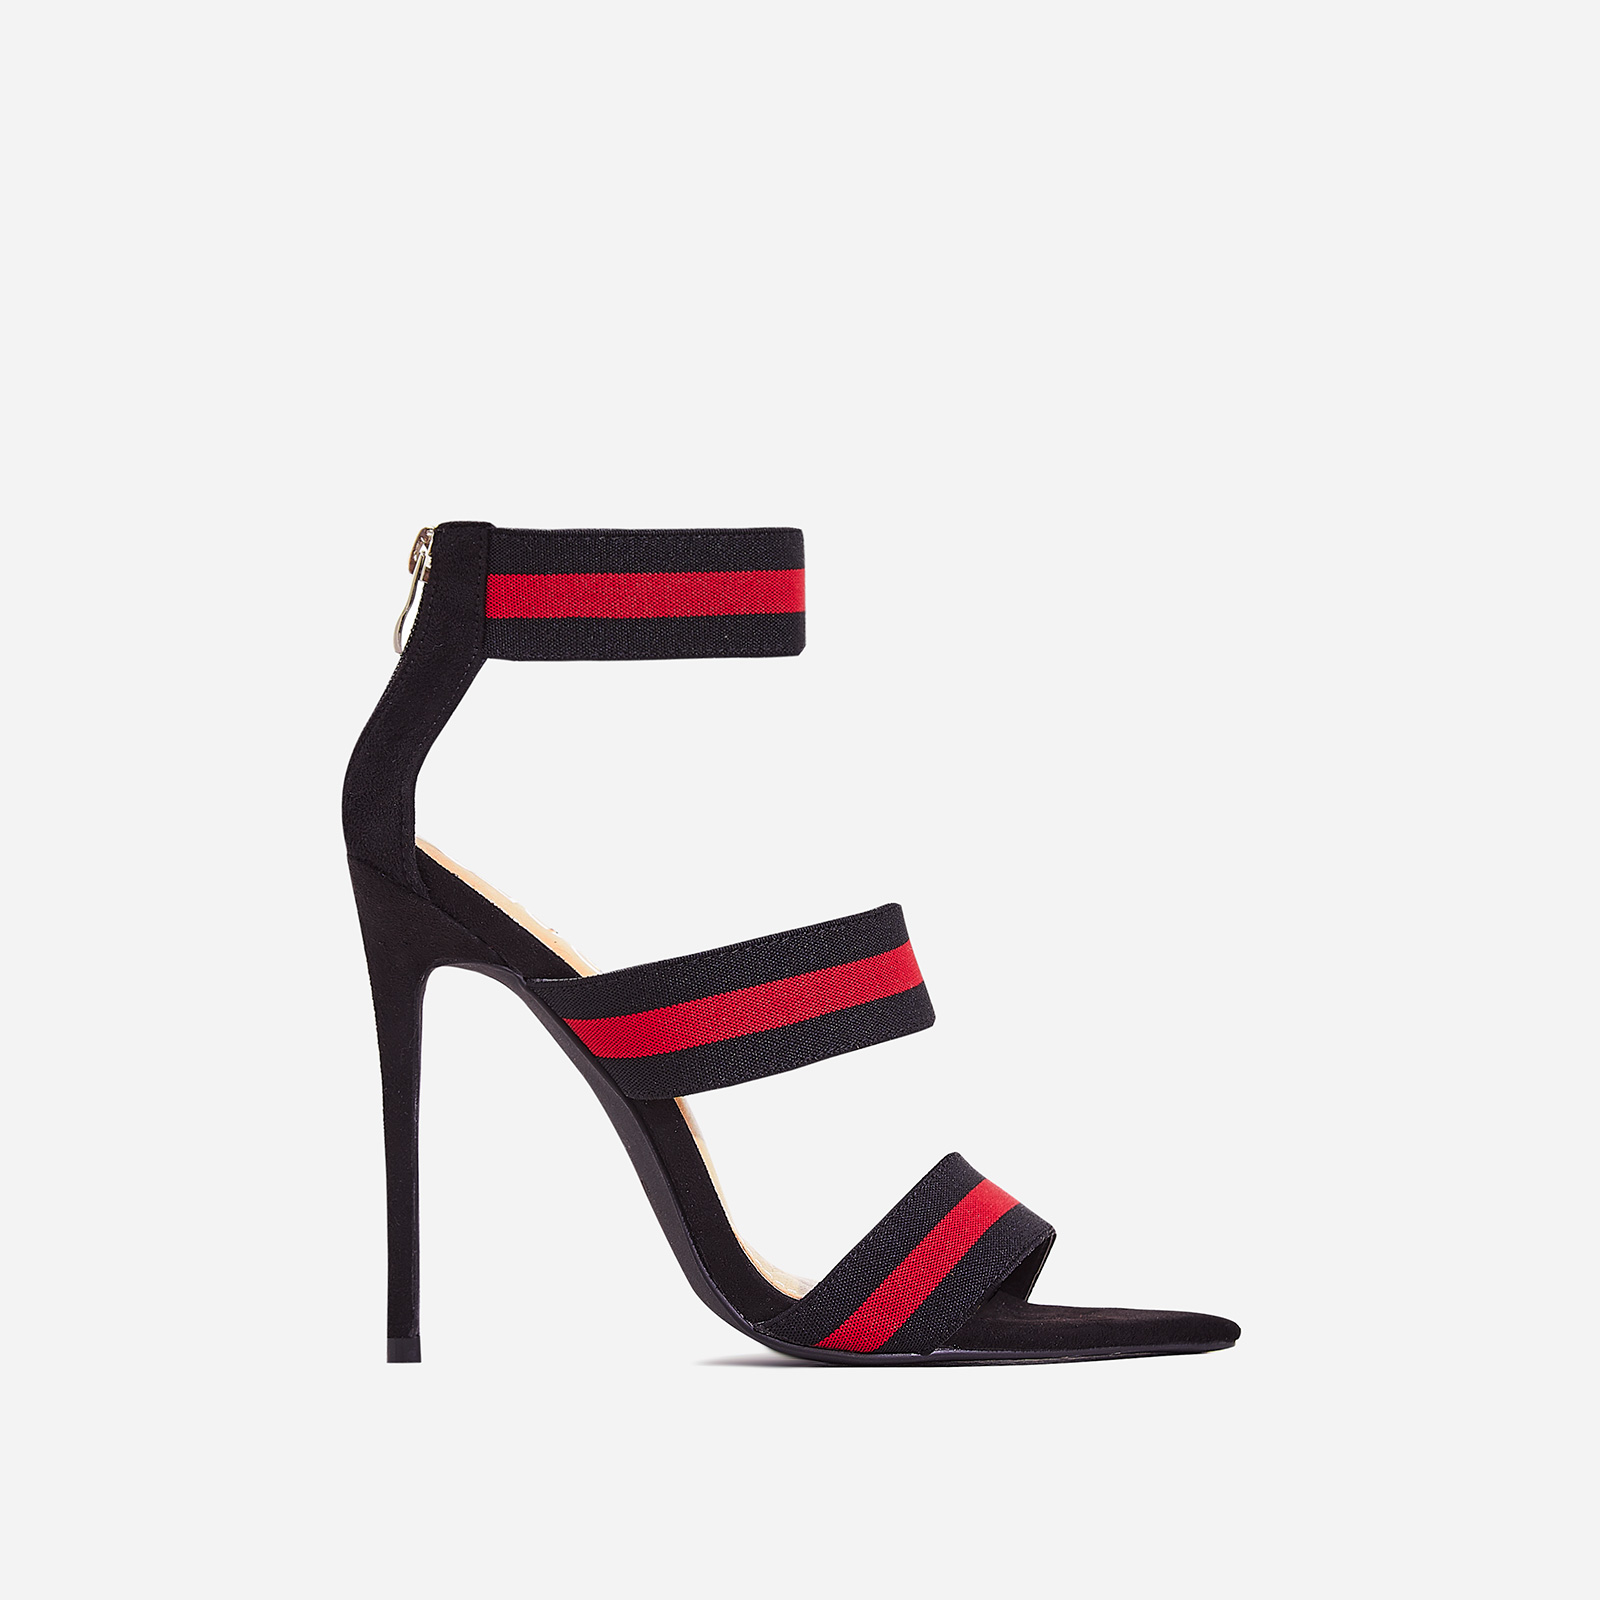 Katrina Red Elasticated Strap Pointed toe Heel In Black Faux Suede